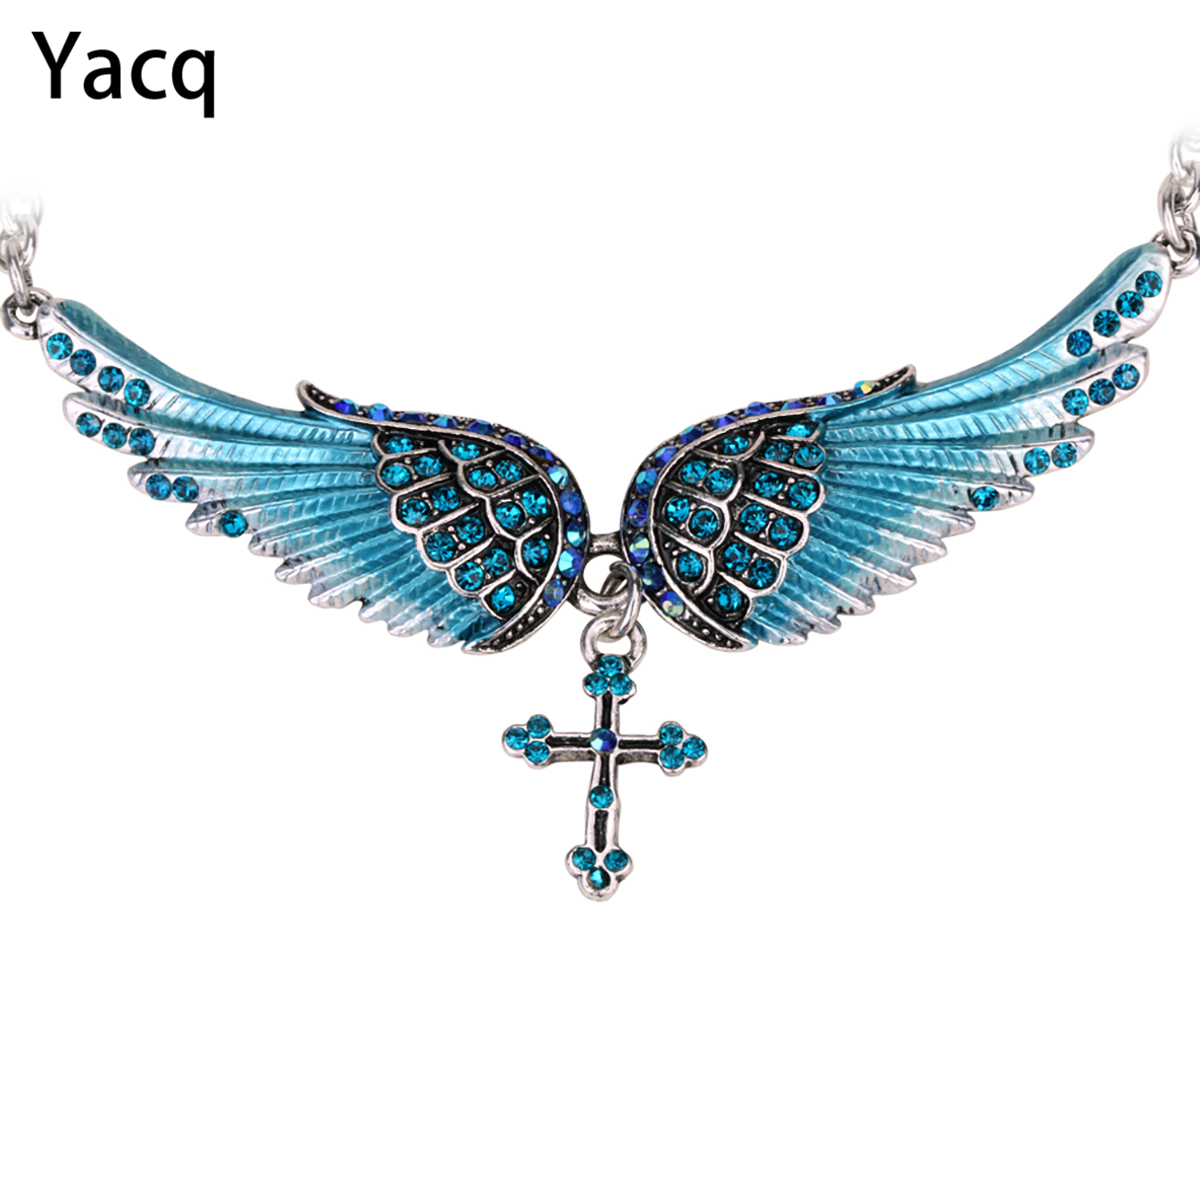 YACQ Angel Wing Cross Choker Halsband Guardian Women Biker Crystal Smycken Presenter Hennes Tjej Silver Färg NC01 Dropshipping (18 + 2) ""